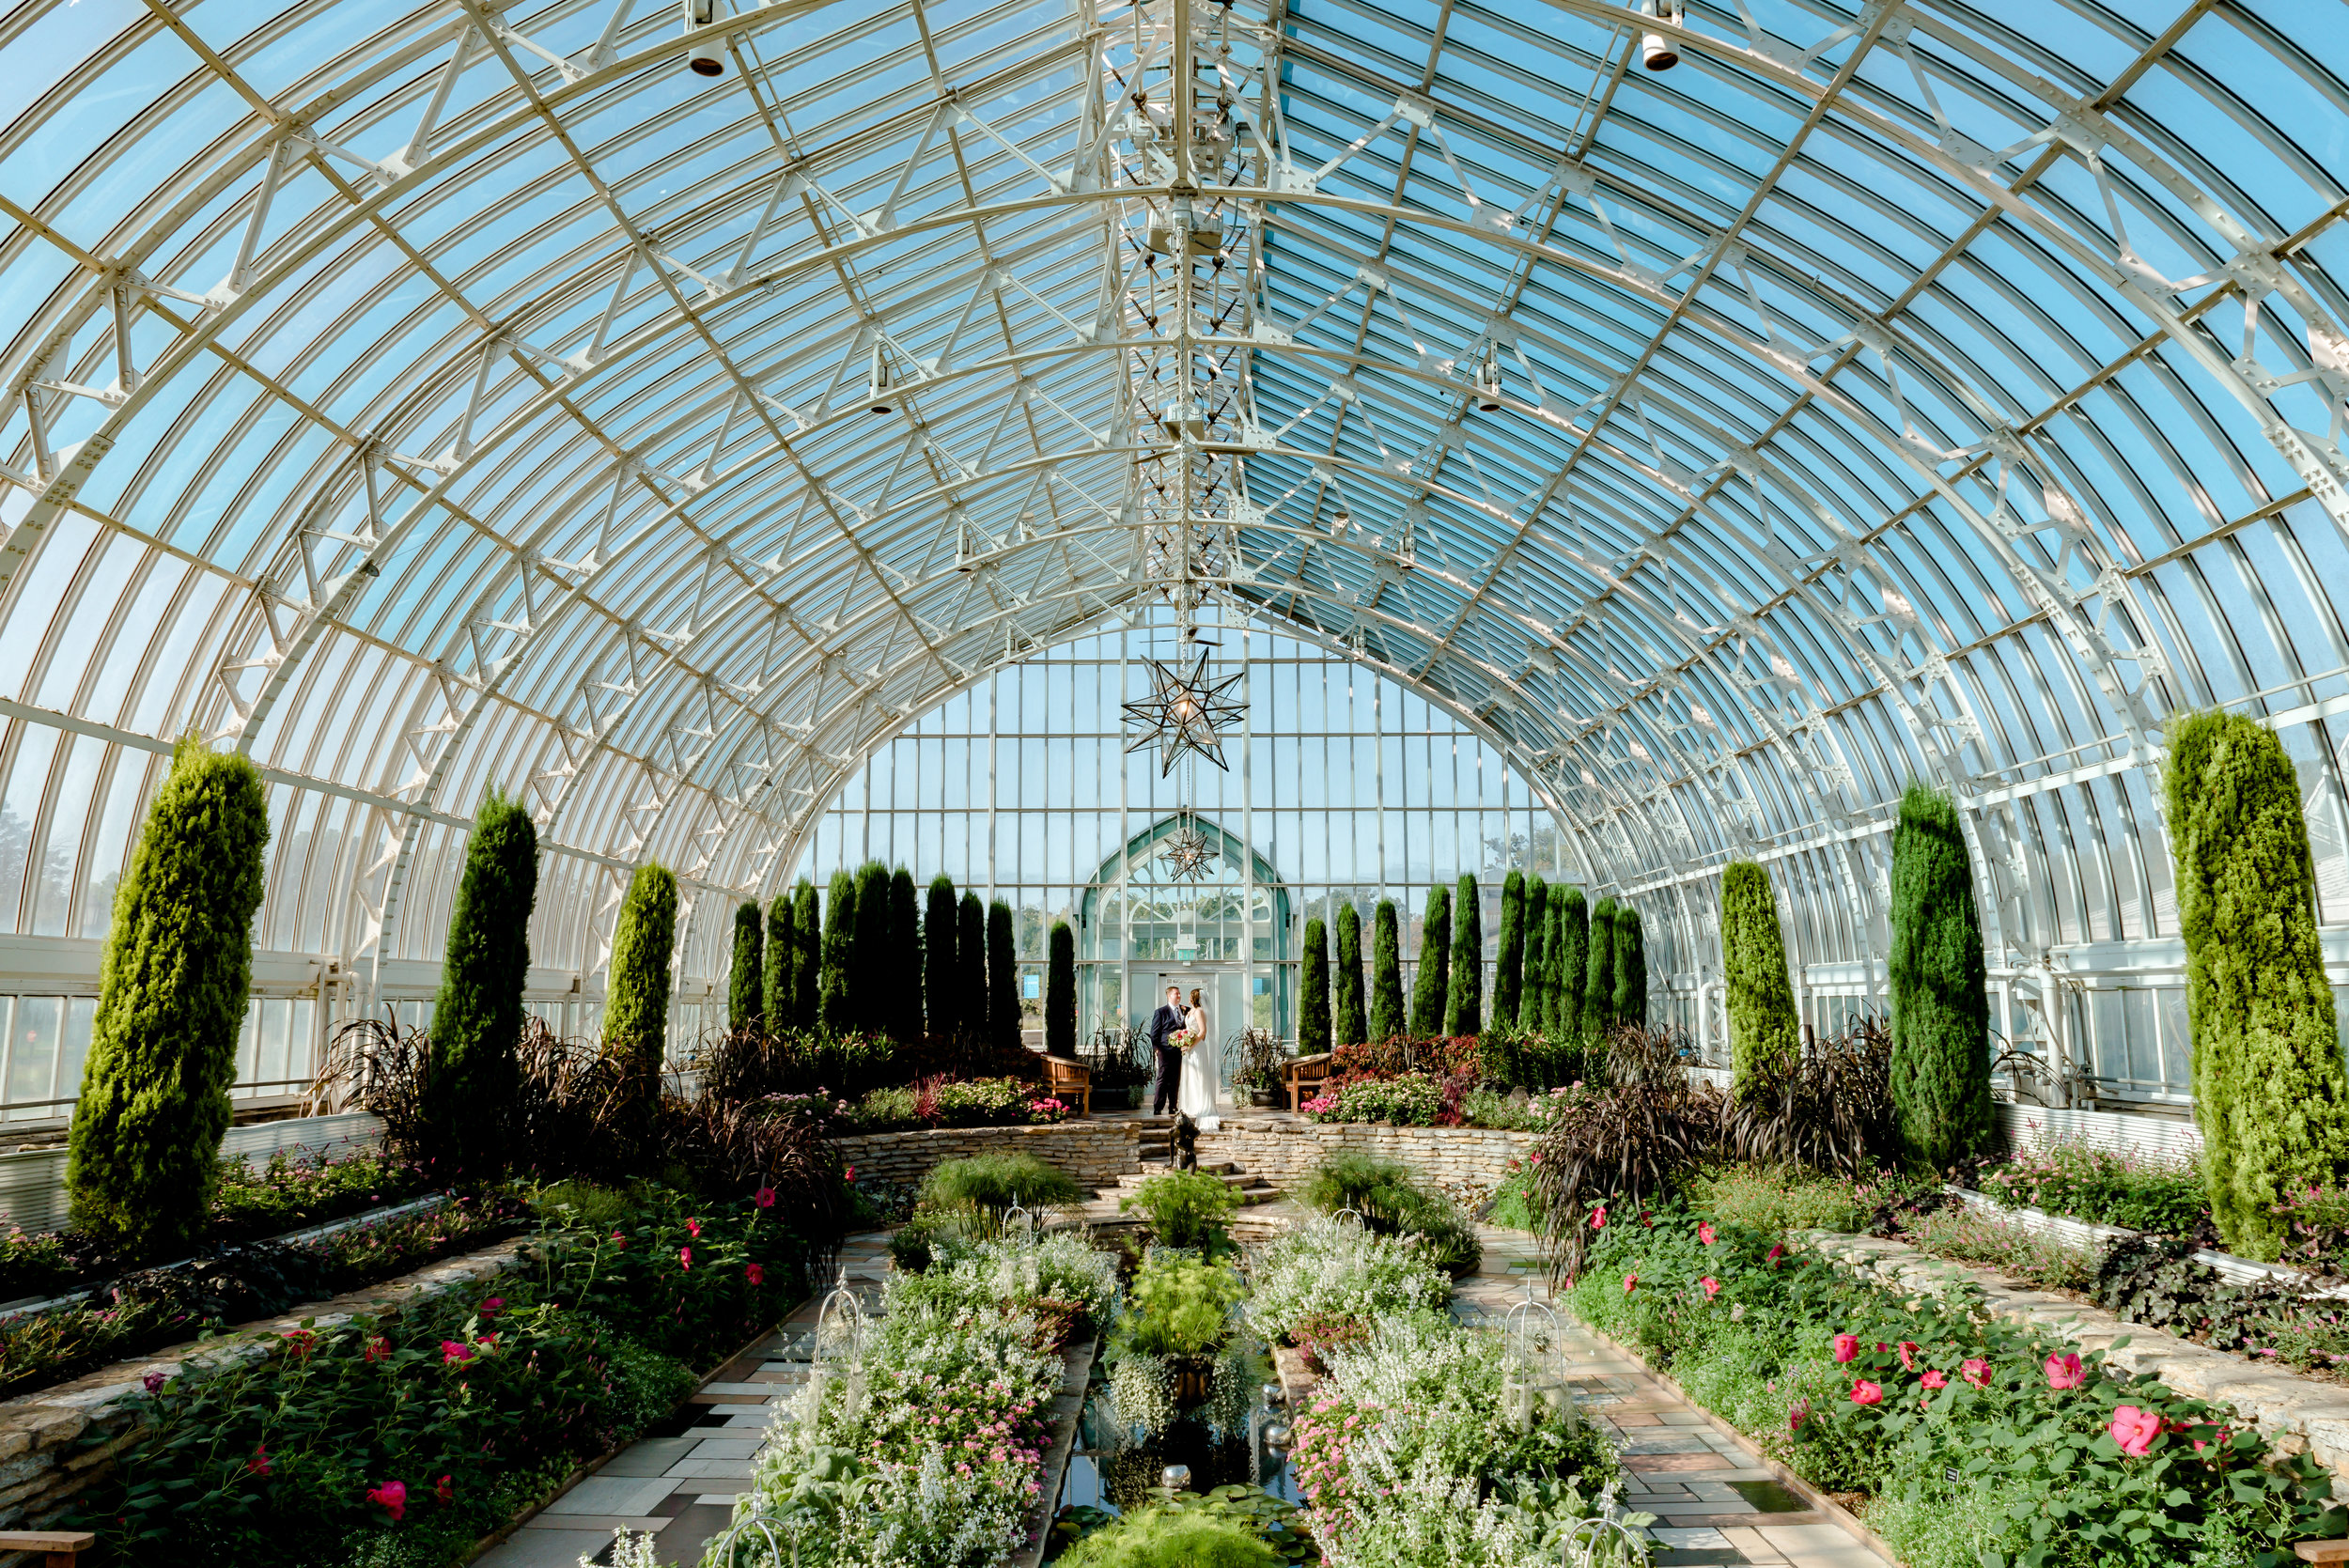 Best Wedding Photographer St. Paul - Como Conservatory Elopement Wedding - Bride and Groom in Sunken Garden after Wedding Ceremony